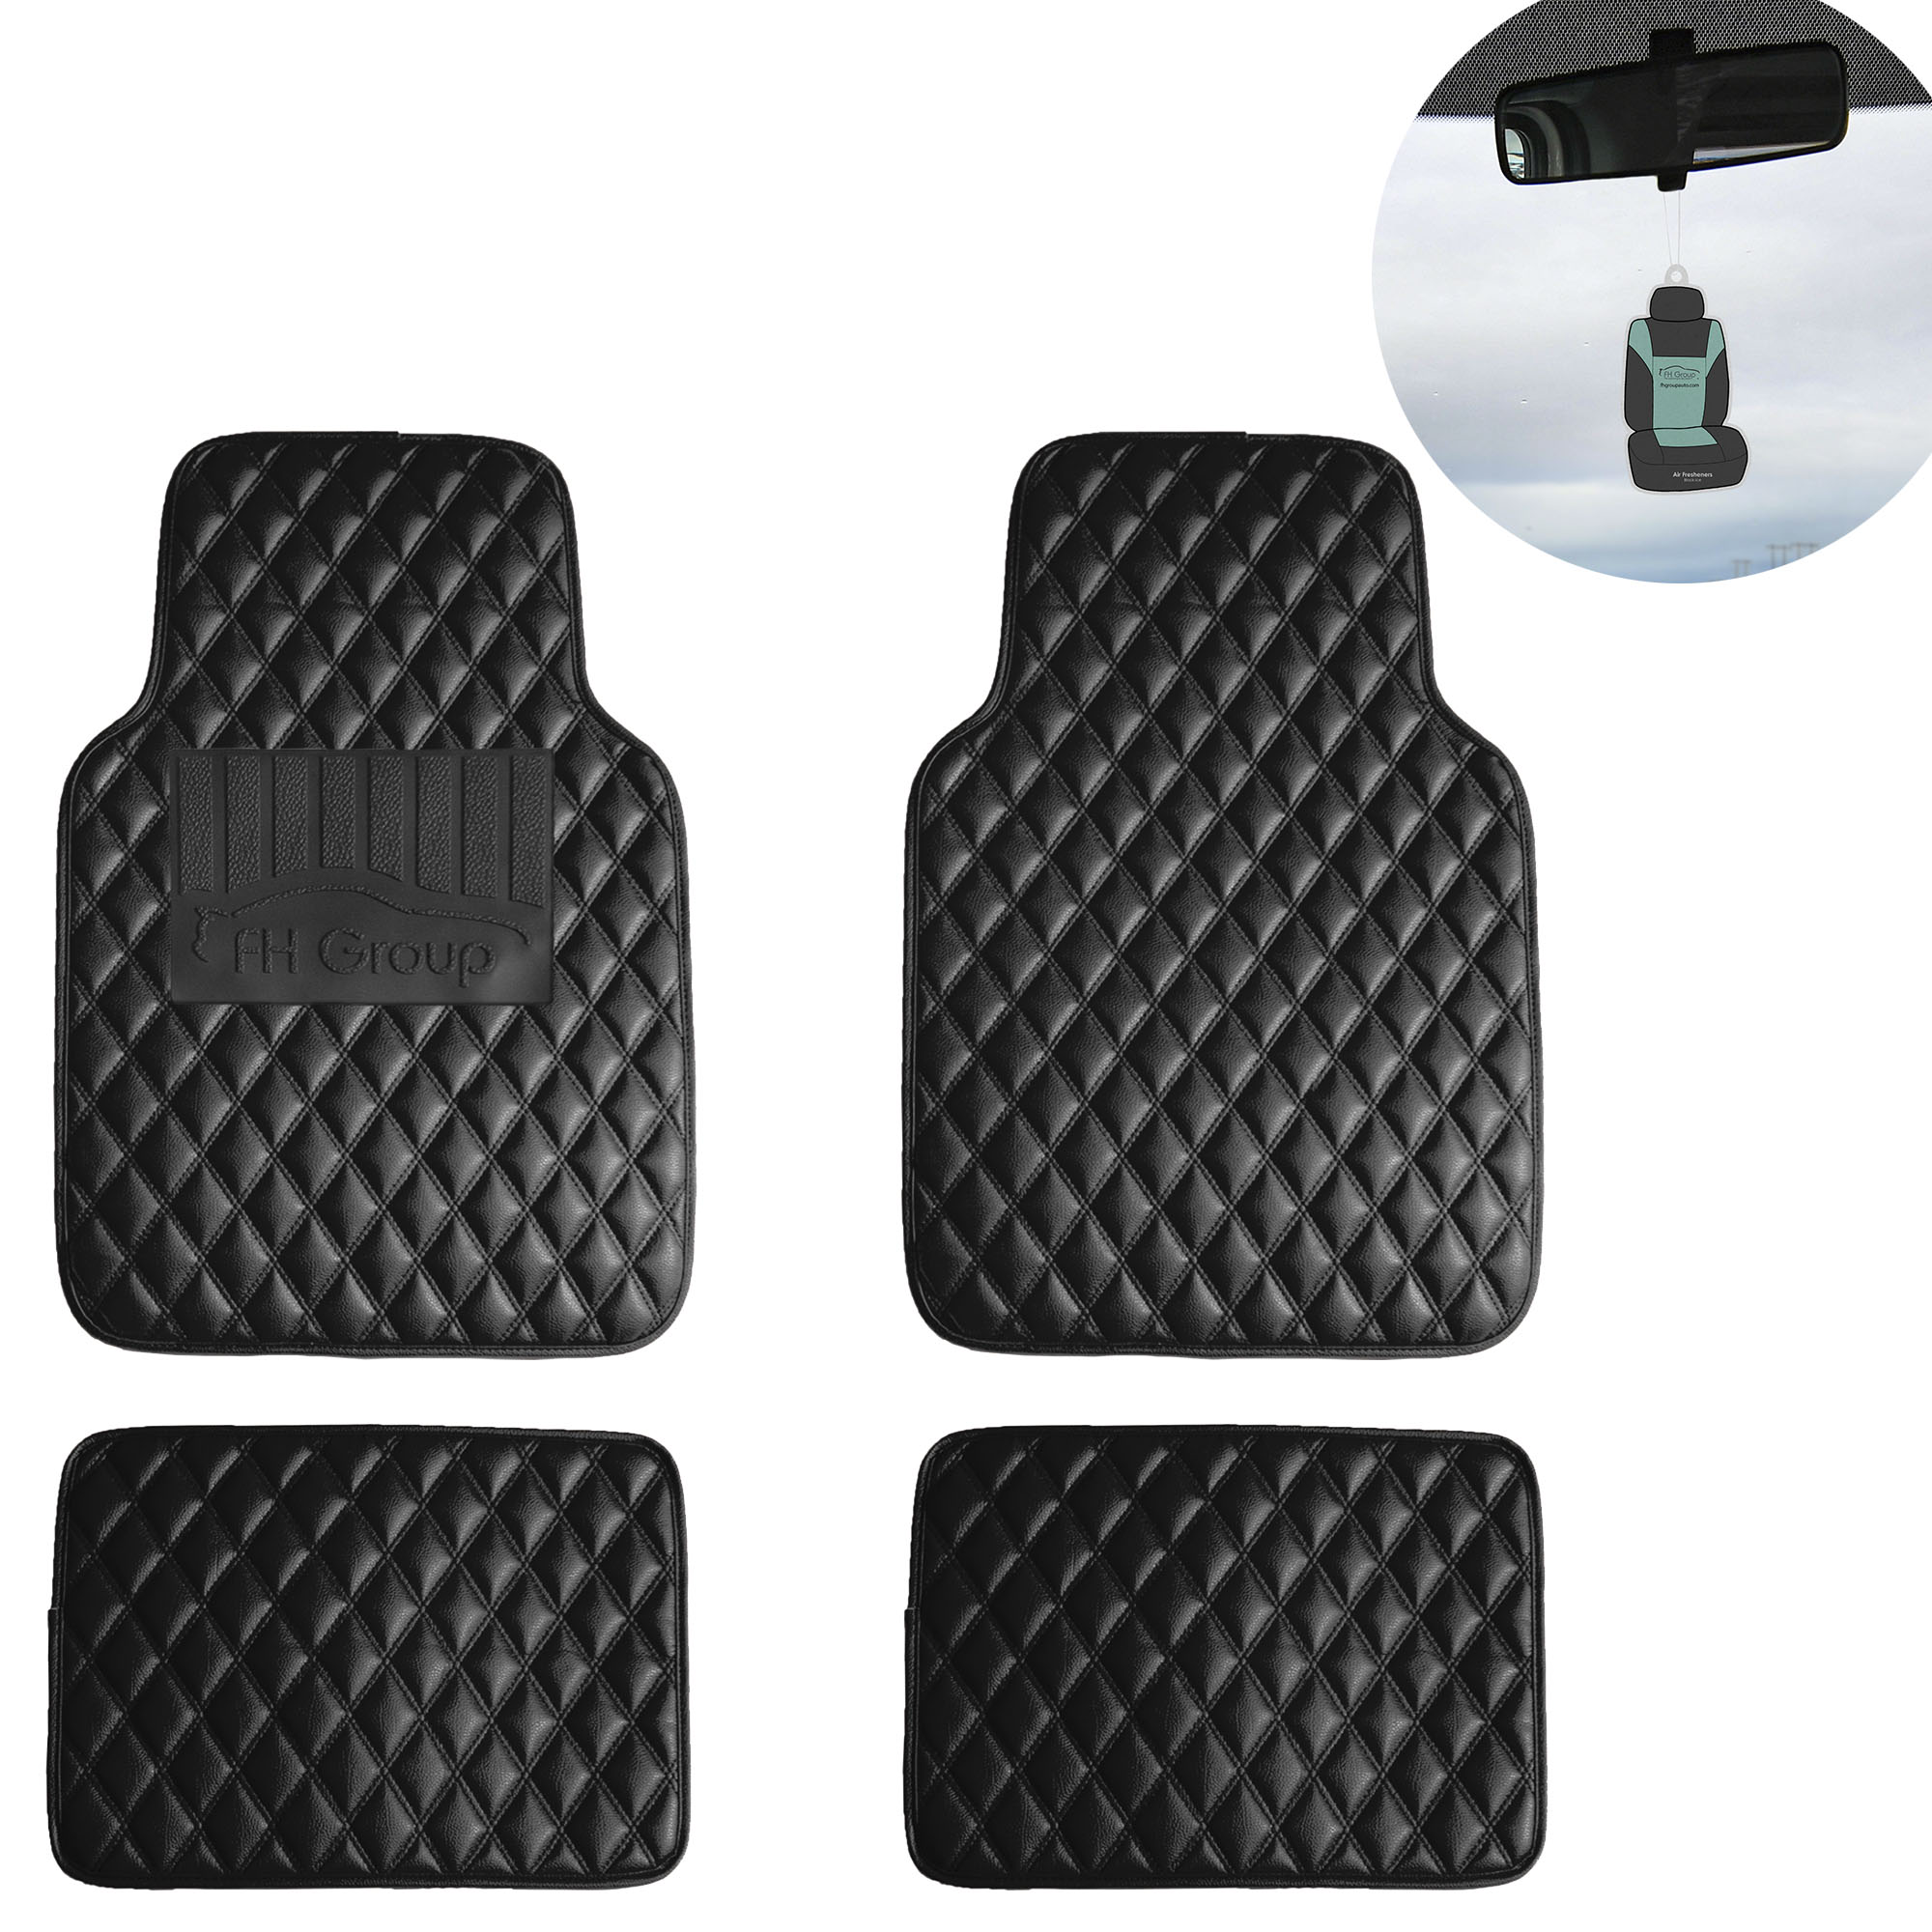 Suv Floor Mats >> Universal Floor Mats For Cars Leather Diamond Design Car Suv Black W